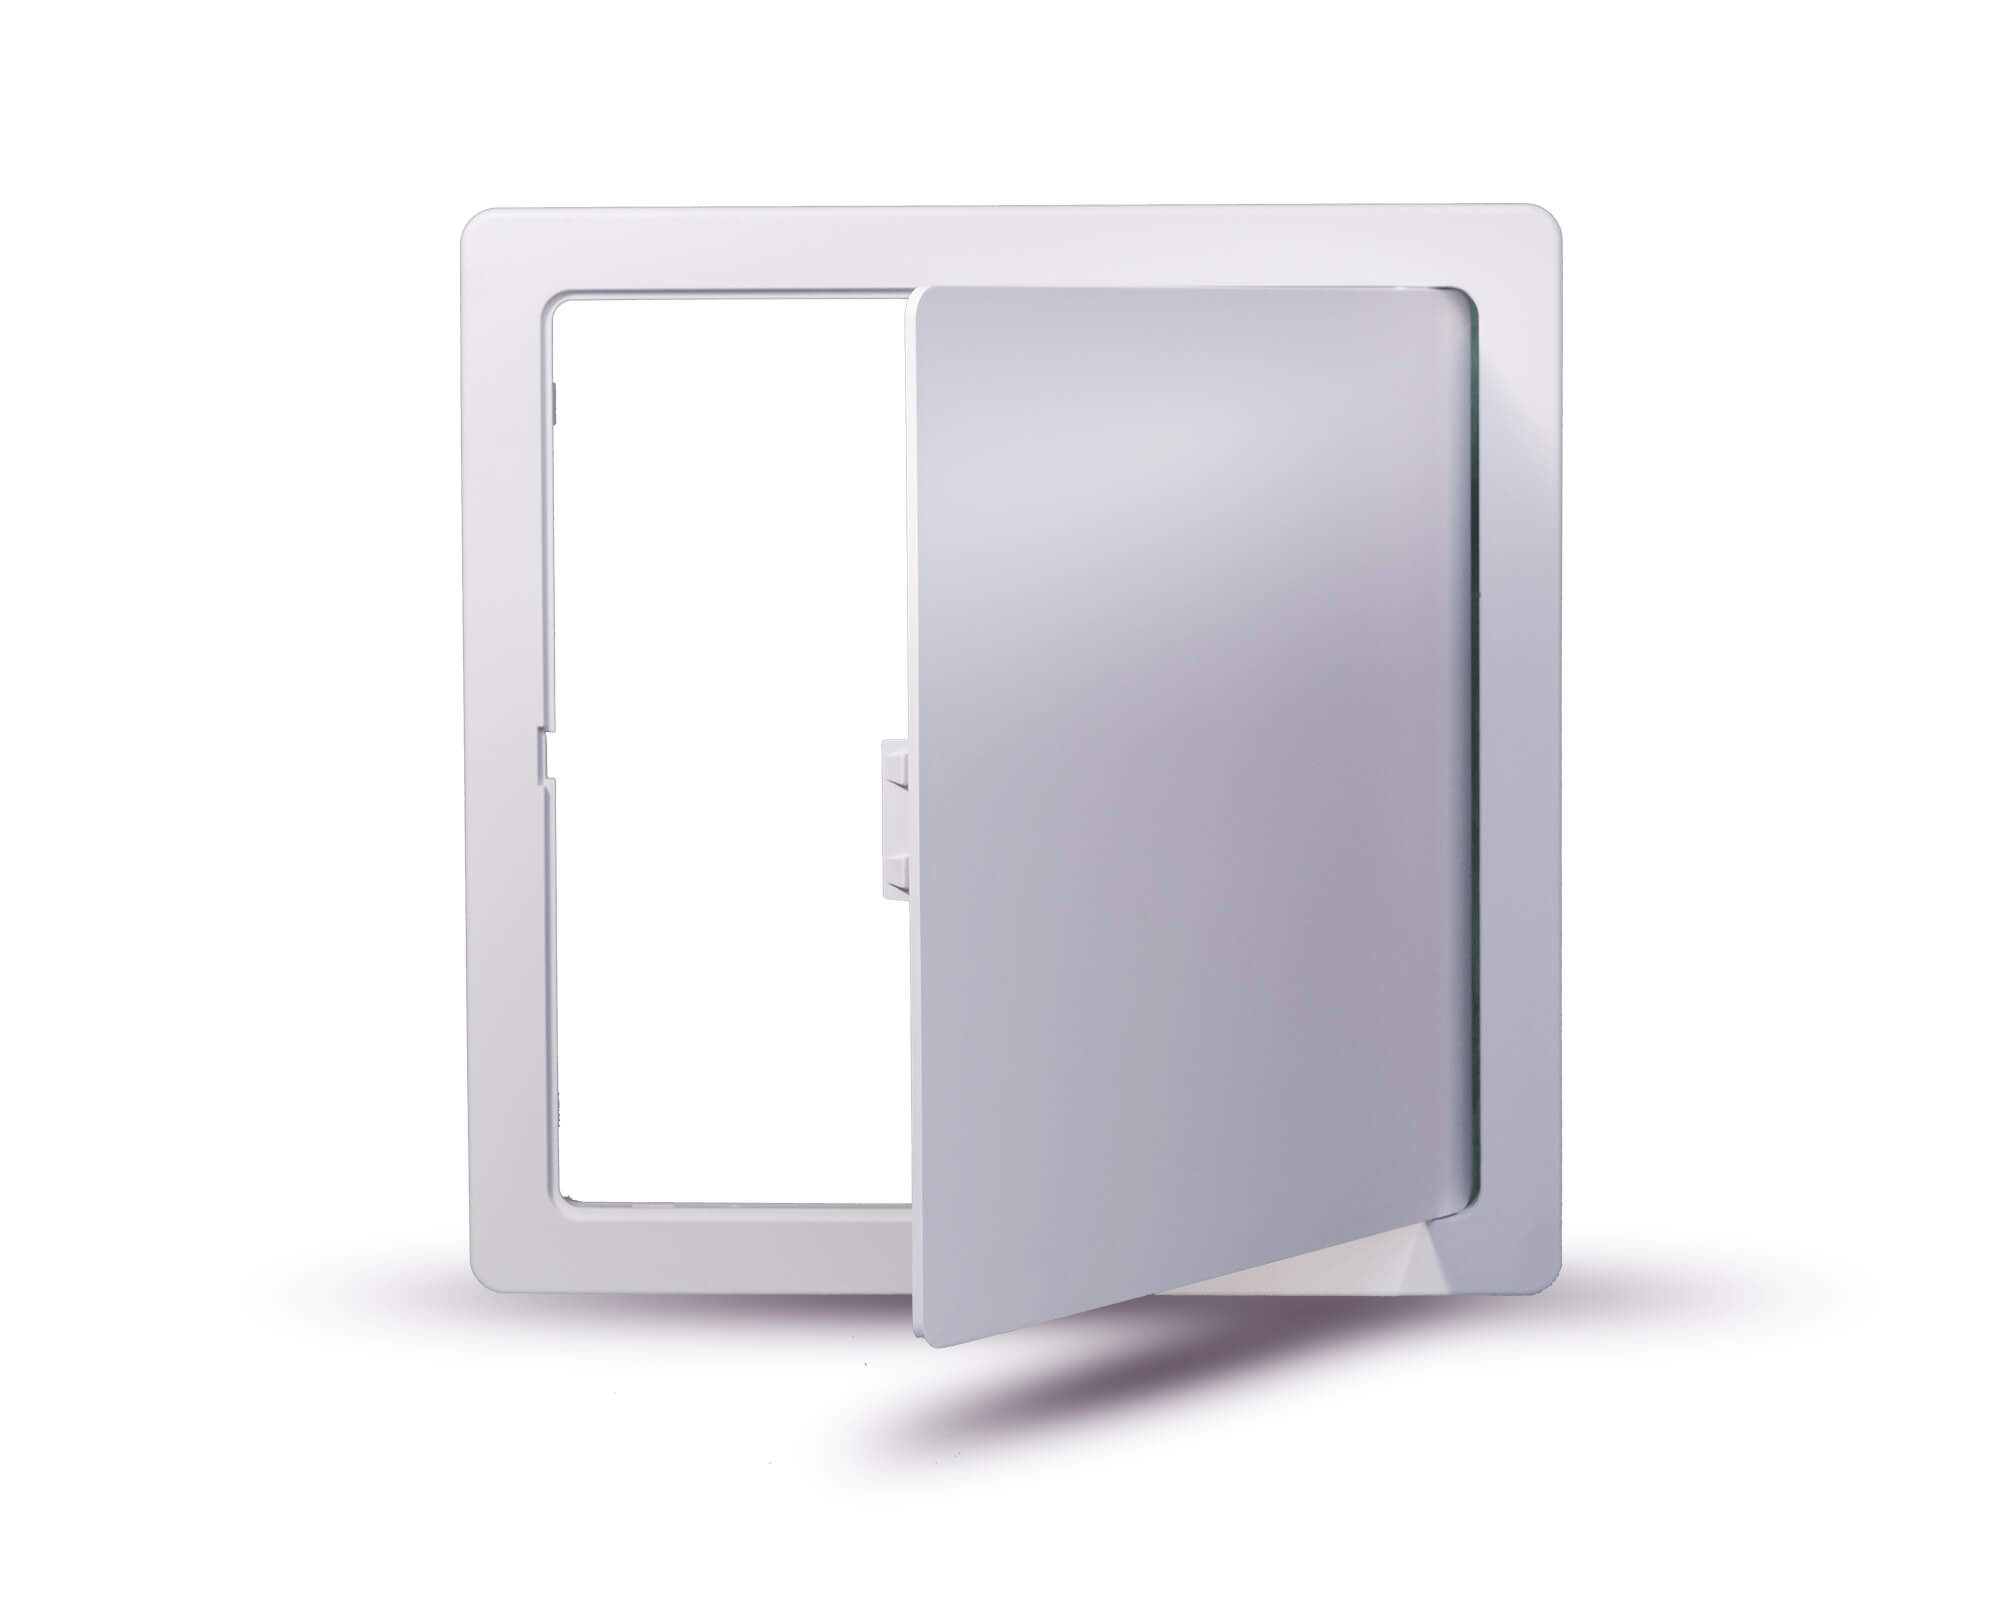 Square access panel picture frame open